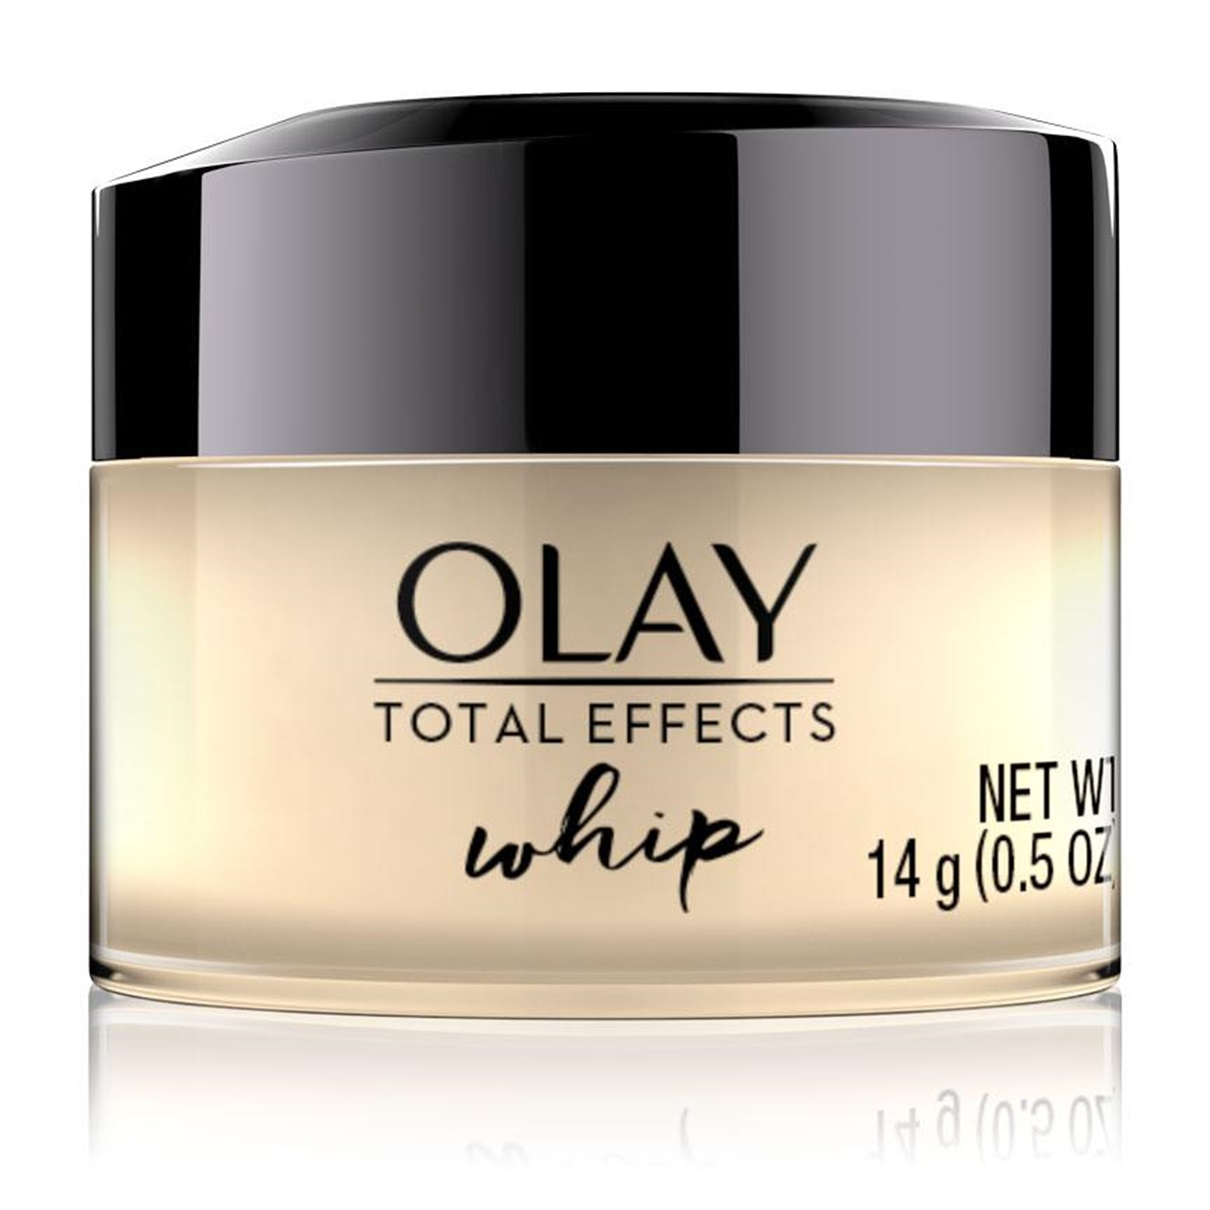 OLAY TOTAL EFFECTS WHIP FACE MOISTURIZER - Olay Total Effects Whip delivers ultimate nourishment without the weight. This breakthrough facial moisturizer transforms from cream to liquid on contact for fast absorption and a breathable feel.